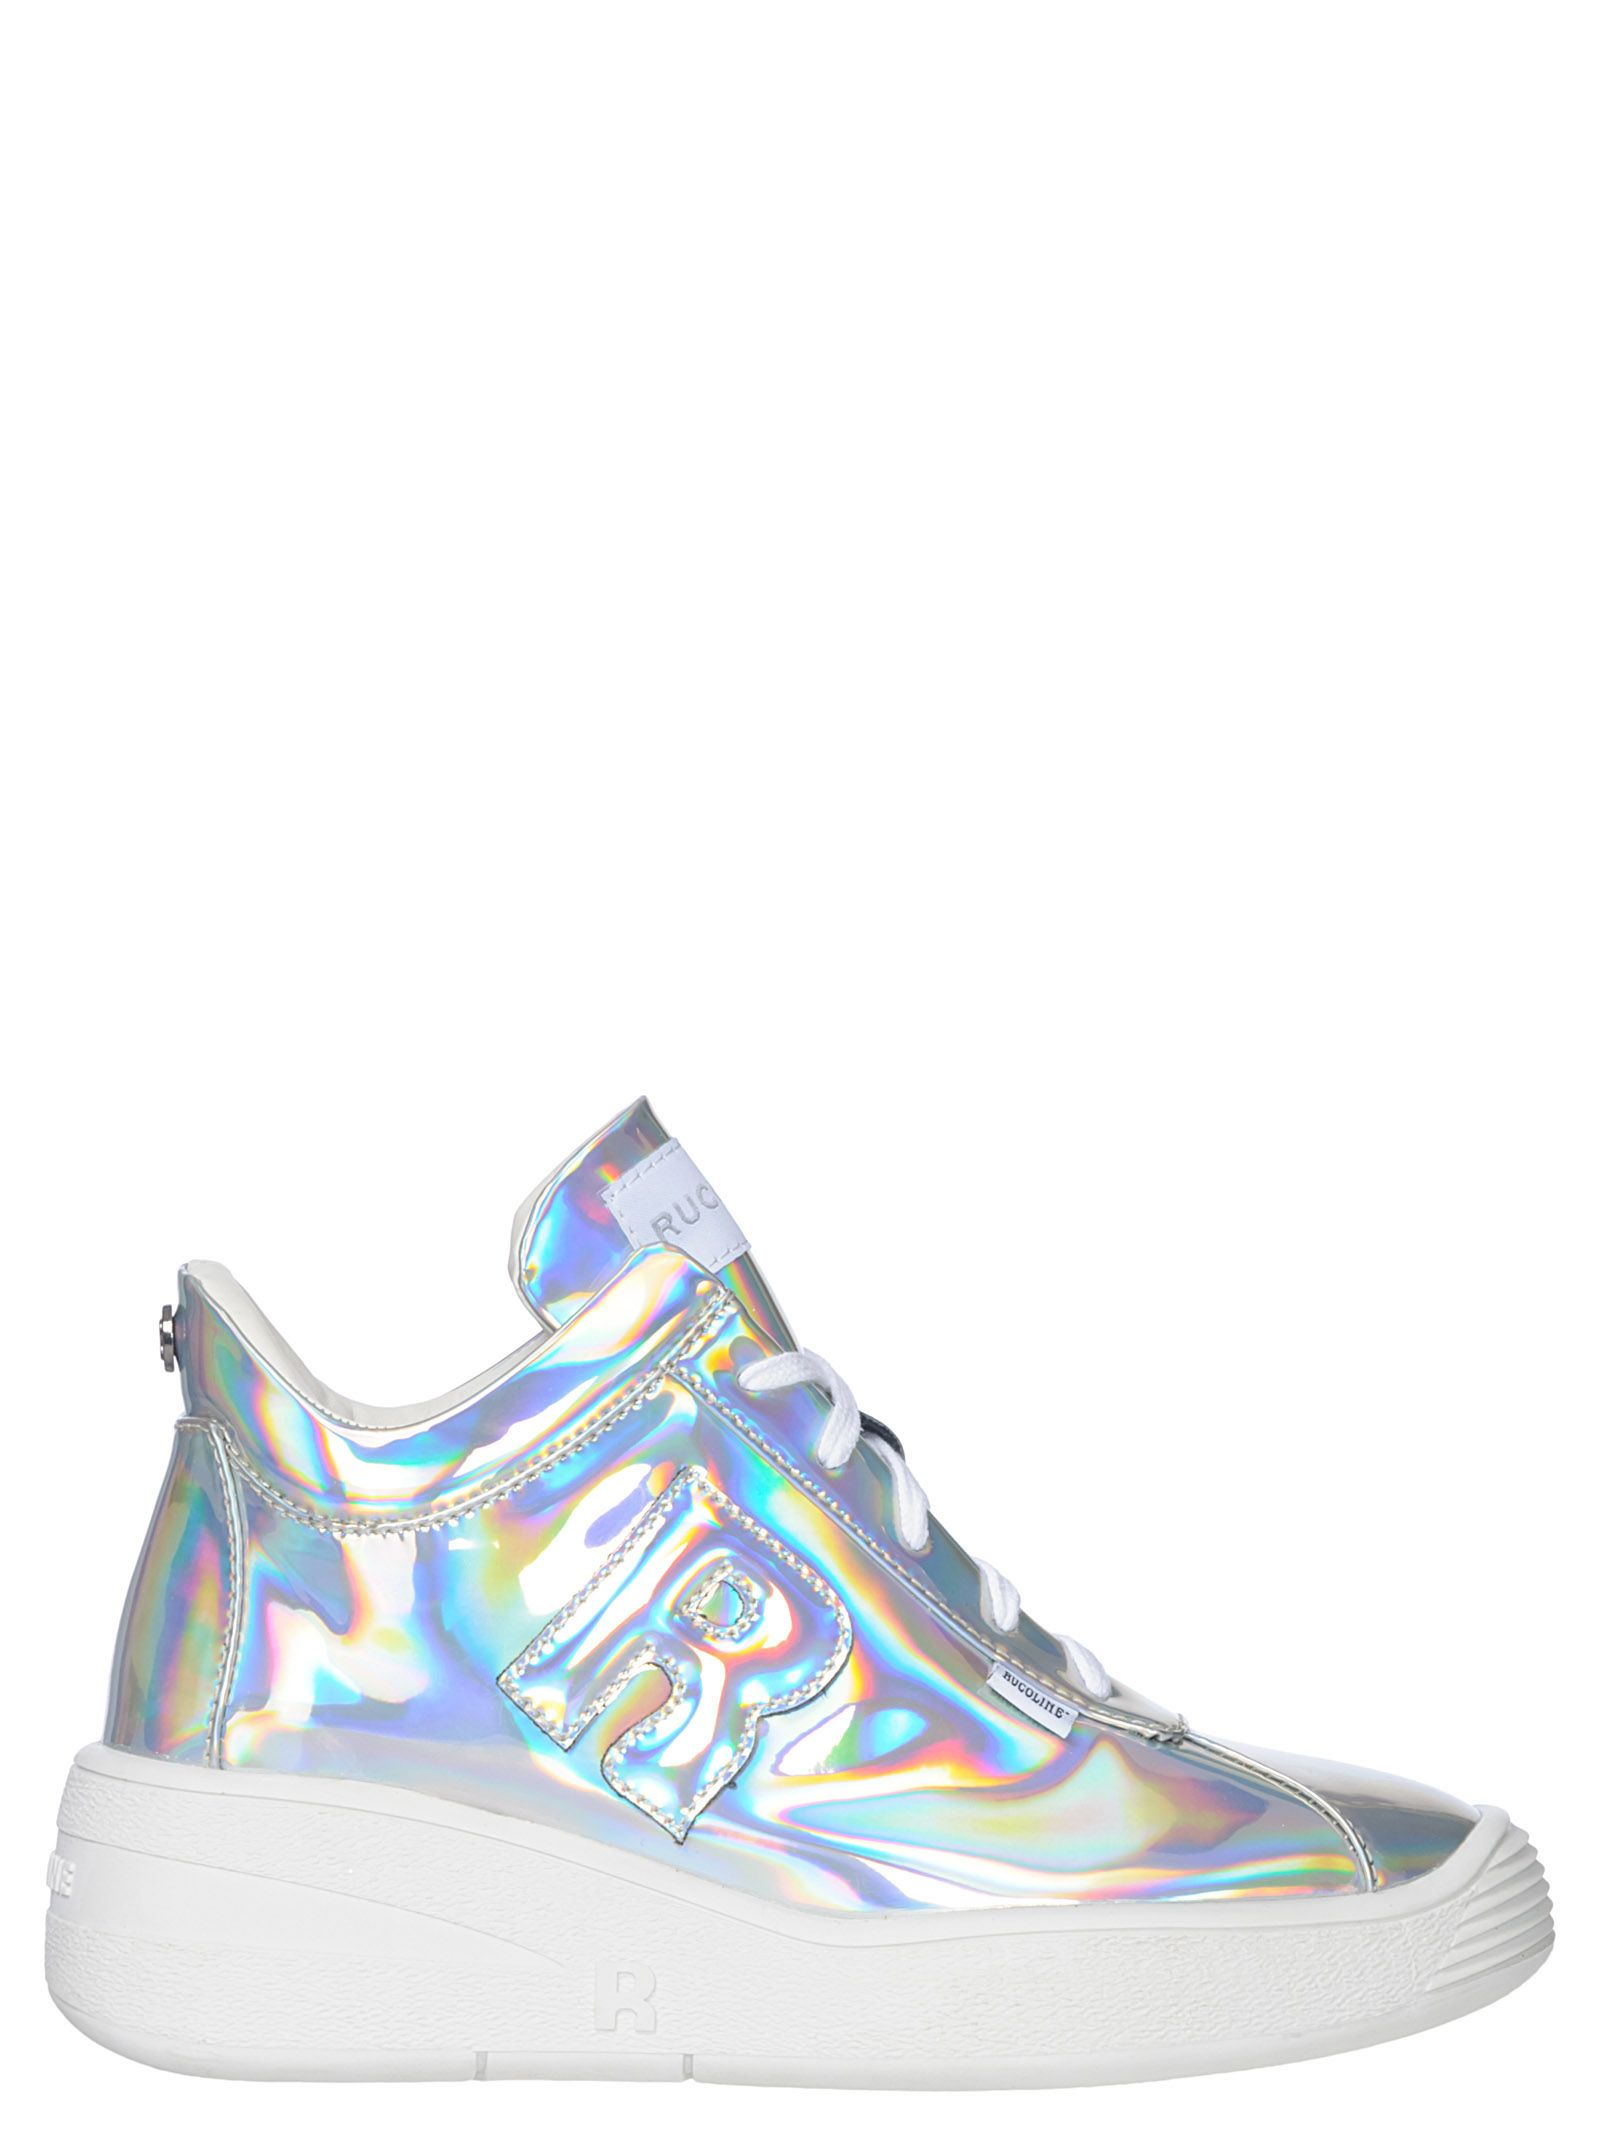 RUCO LINE Rucoline Sneakers Livingston in Silver